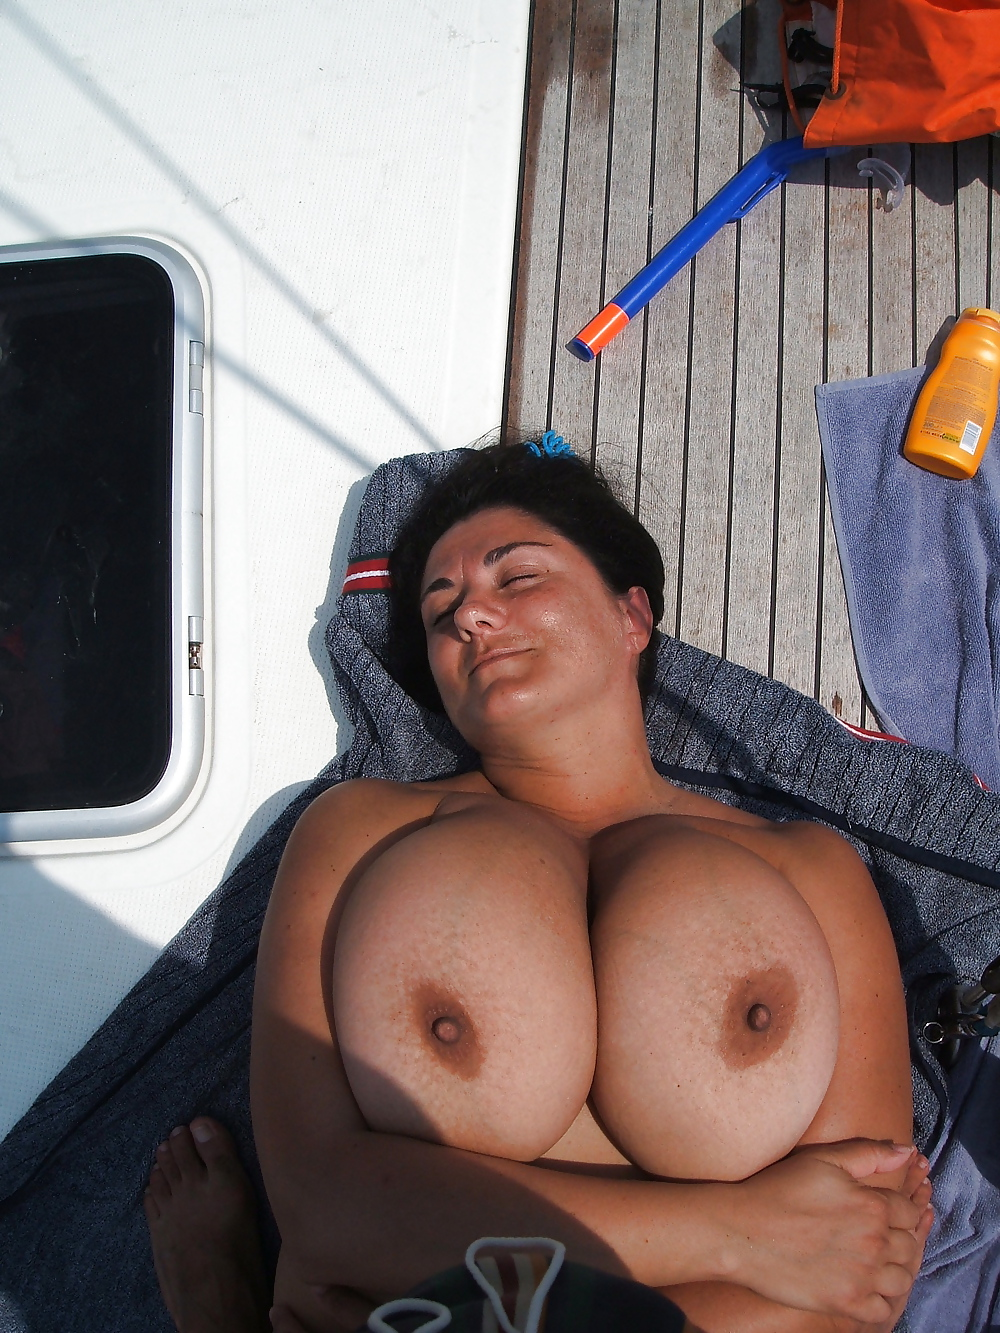 Saggy tits women fucked